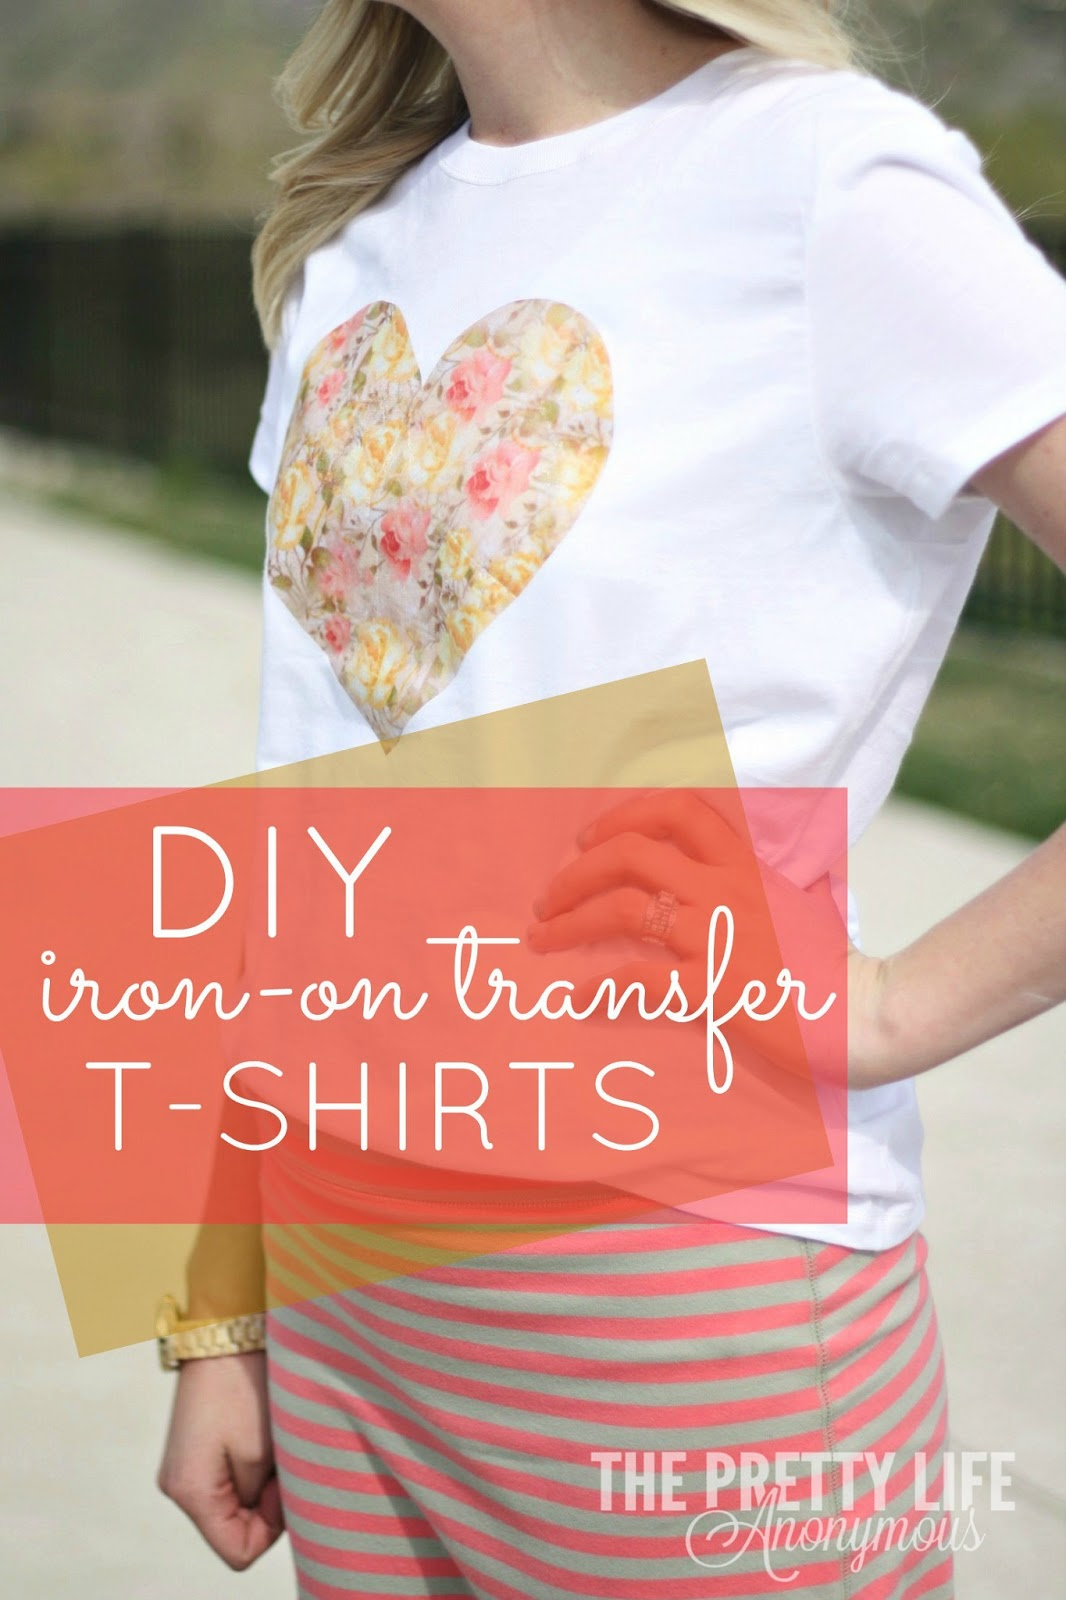 The pretty life girls pla diy iron on transfer shirts for Create your own iron on transfer for t shirt